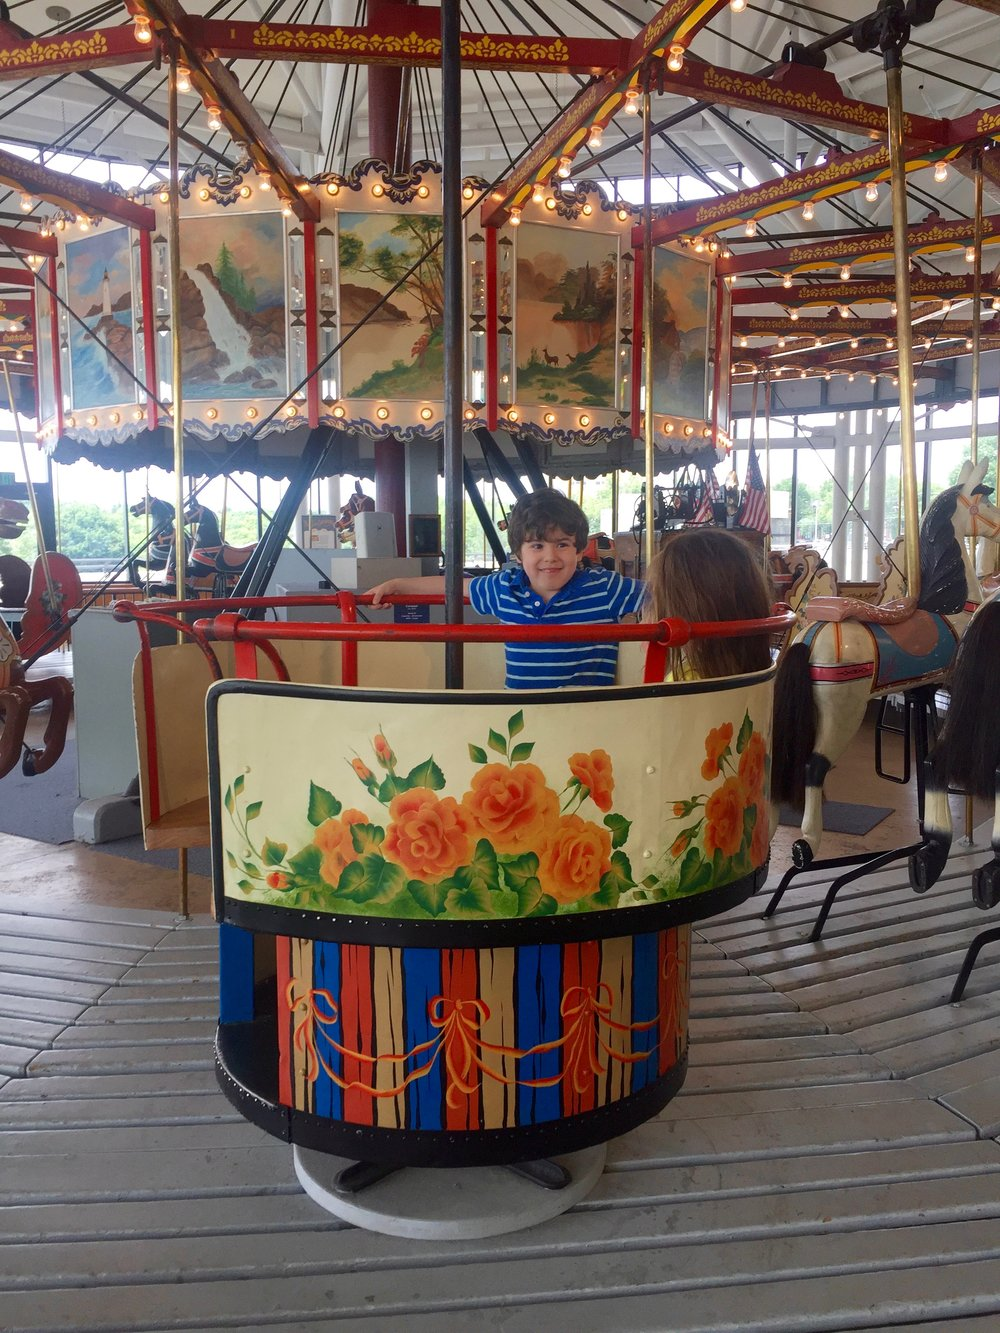 Teacup on vintage carousel